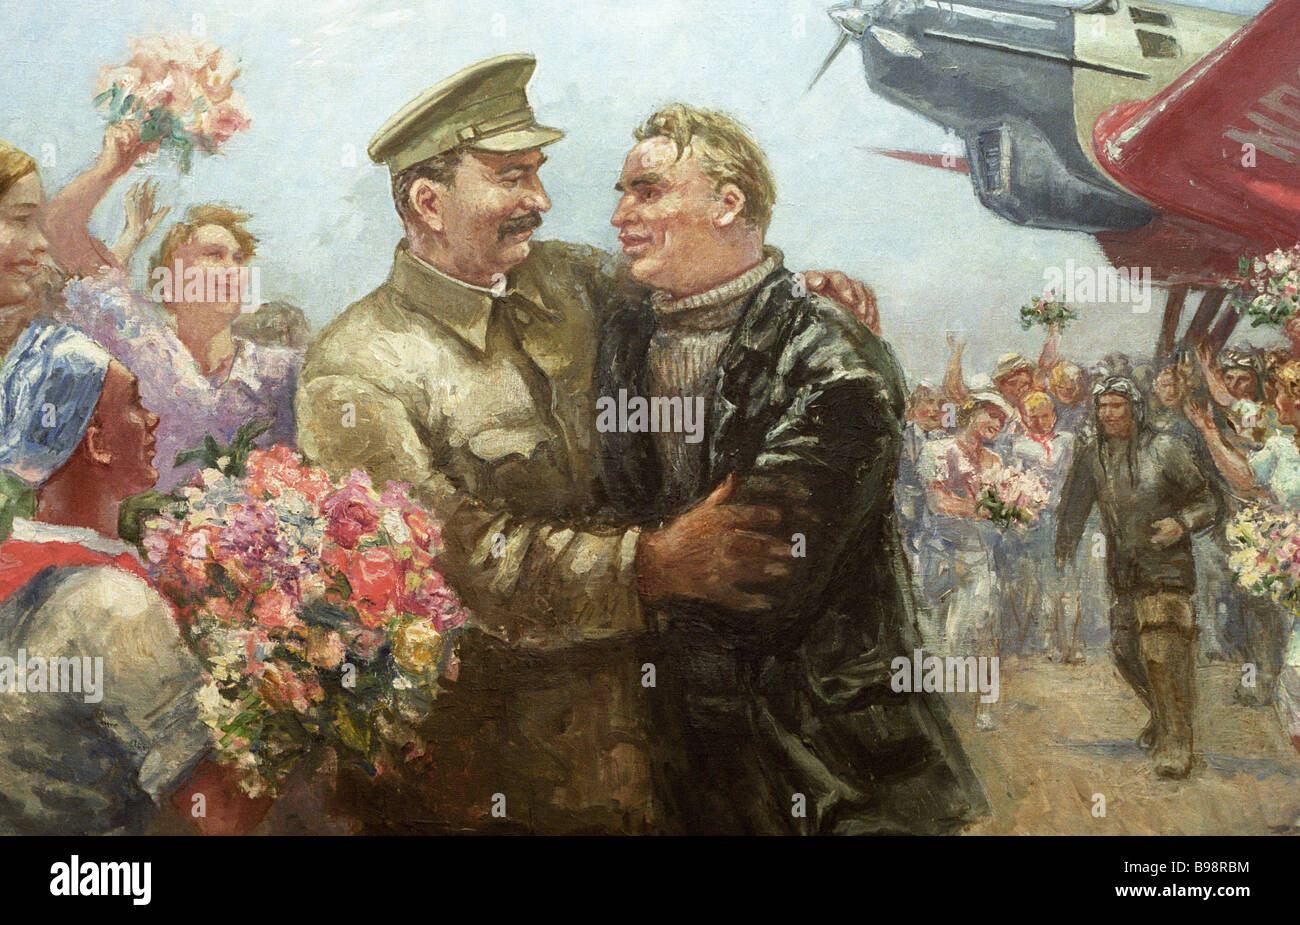 Related Keywords & Suggestions for stalin painting